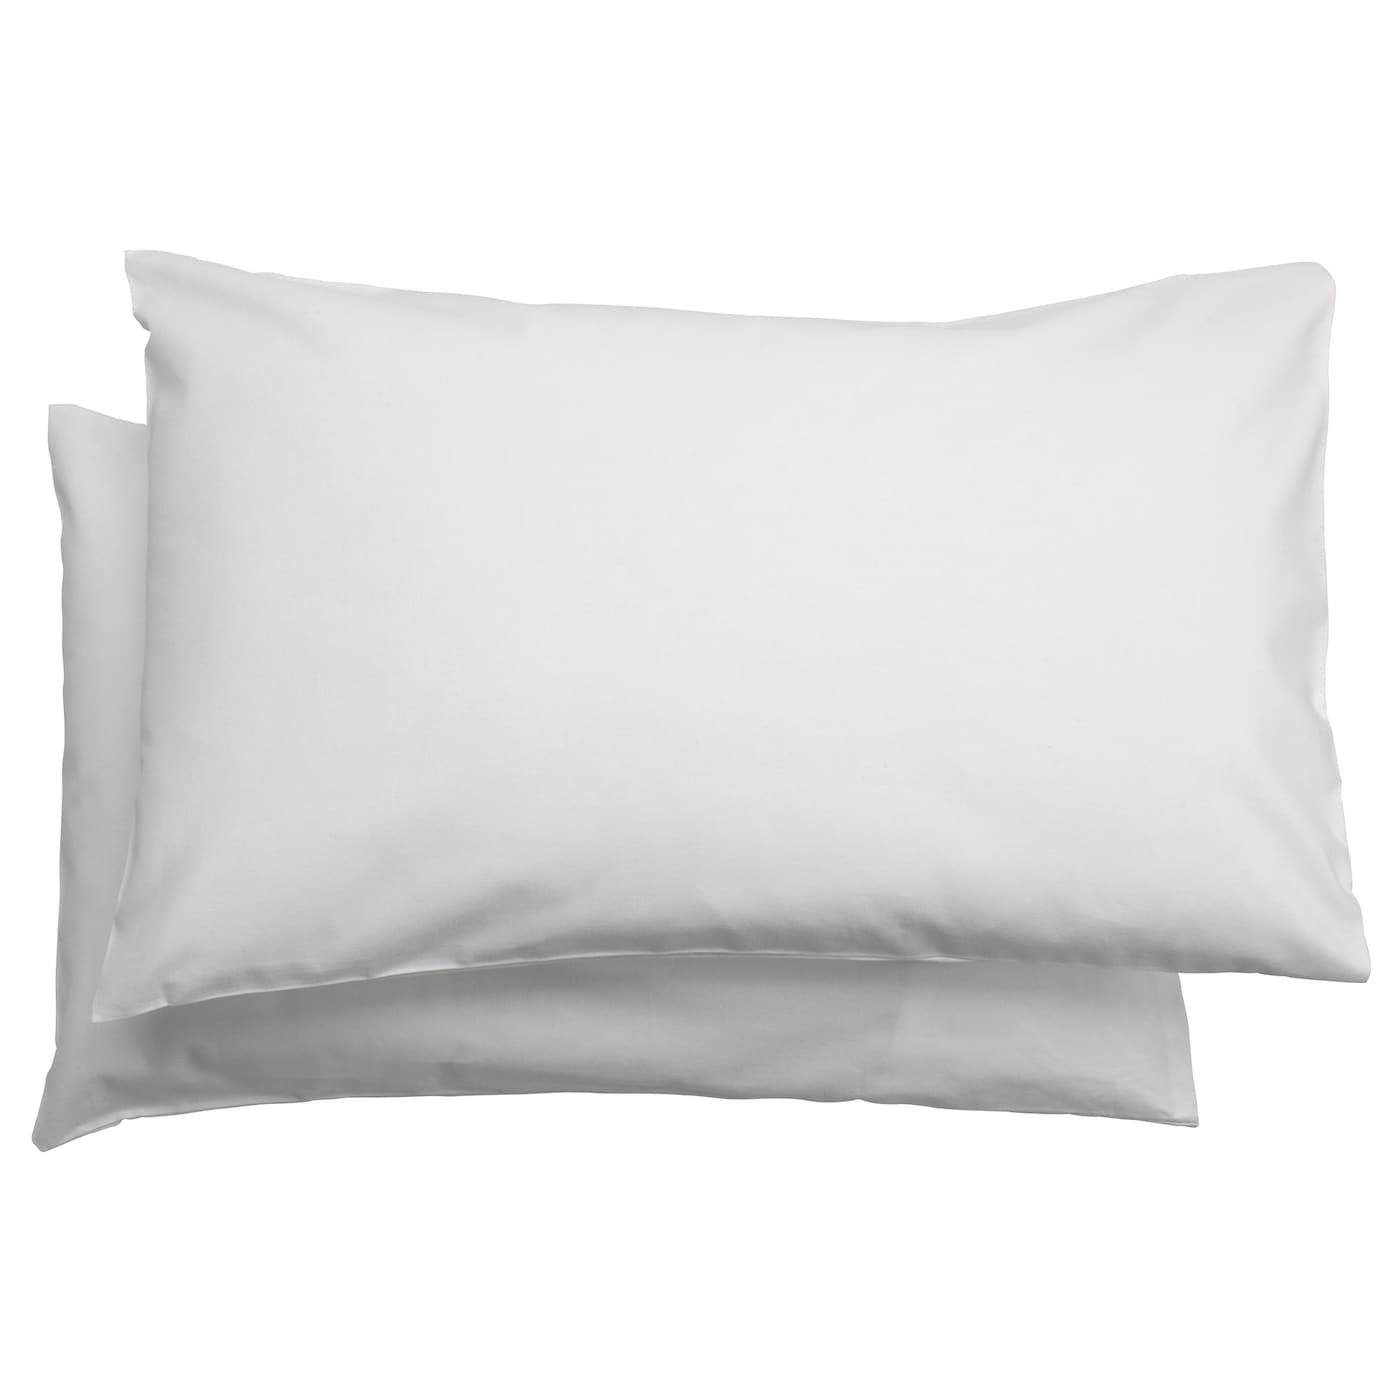 IKEA LEN pillowcase for cot Protects the pillow from stains and dirt and prolongs its life.